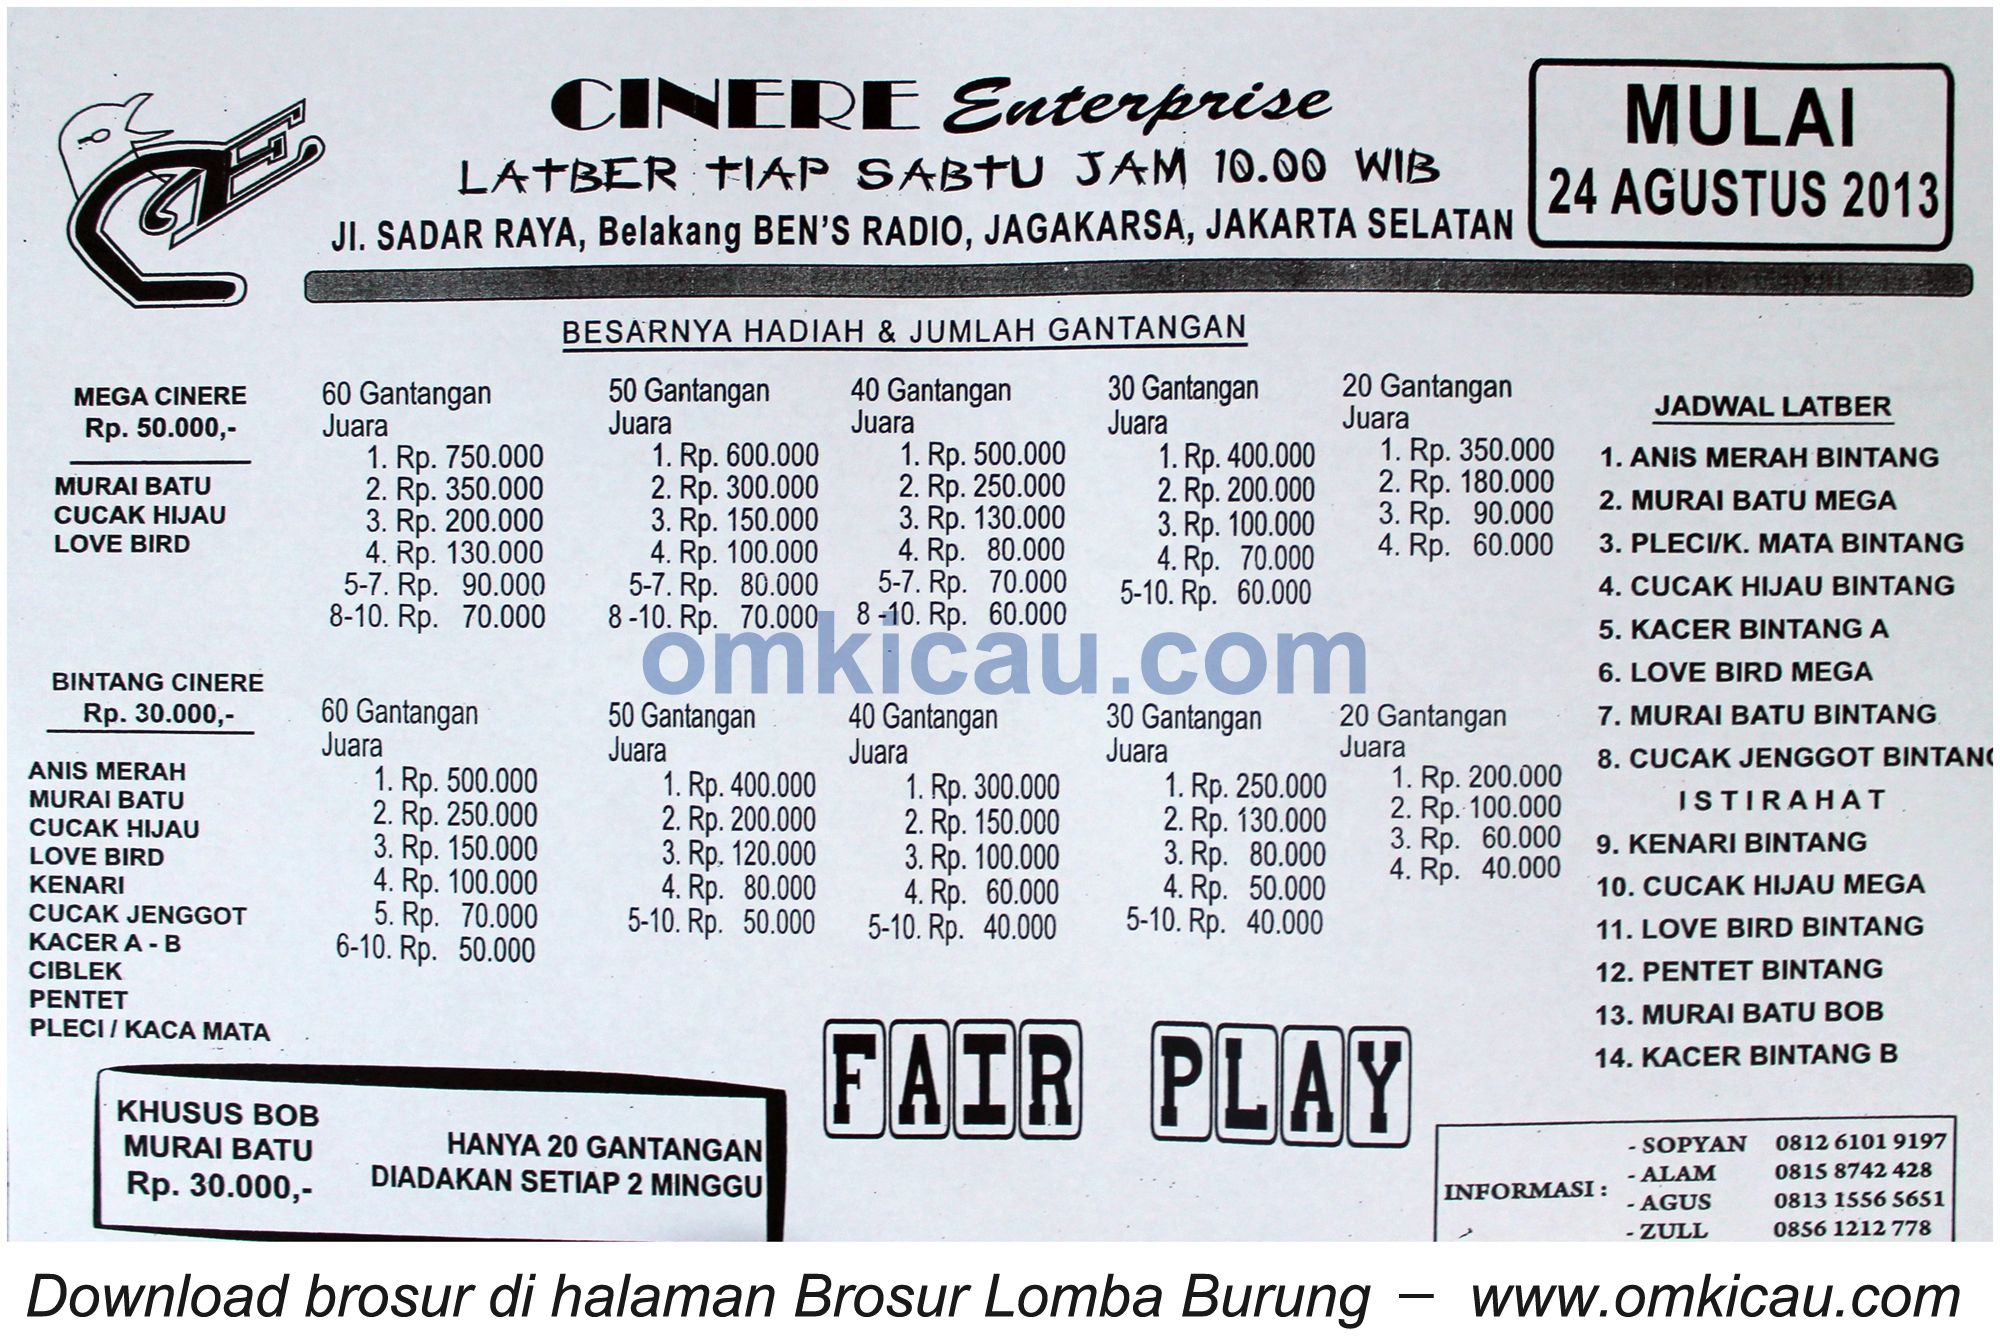 Latber Cinere Enterprise